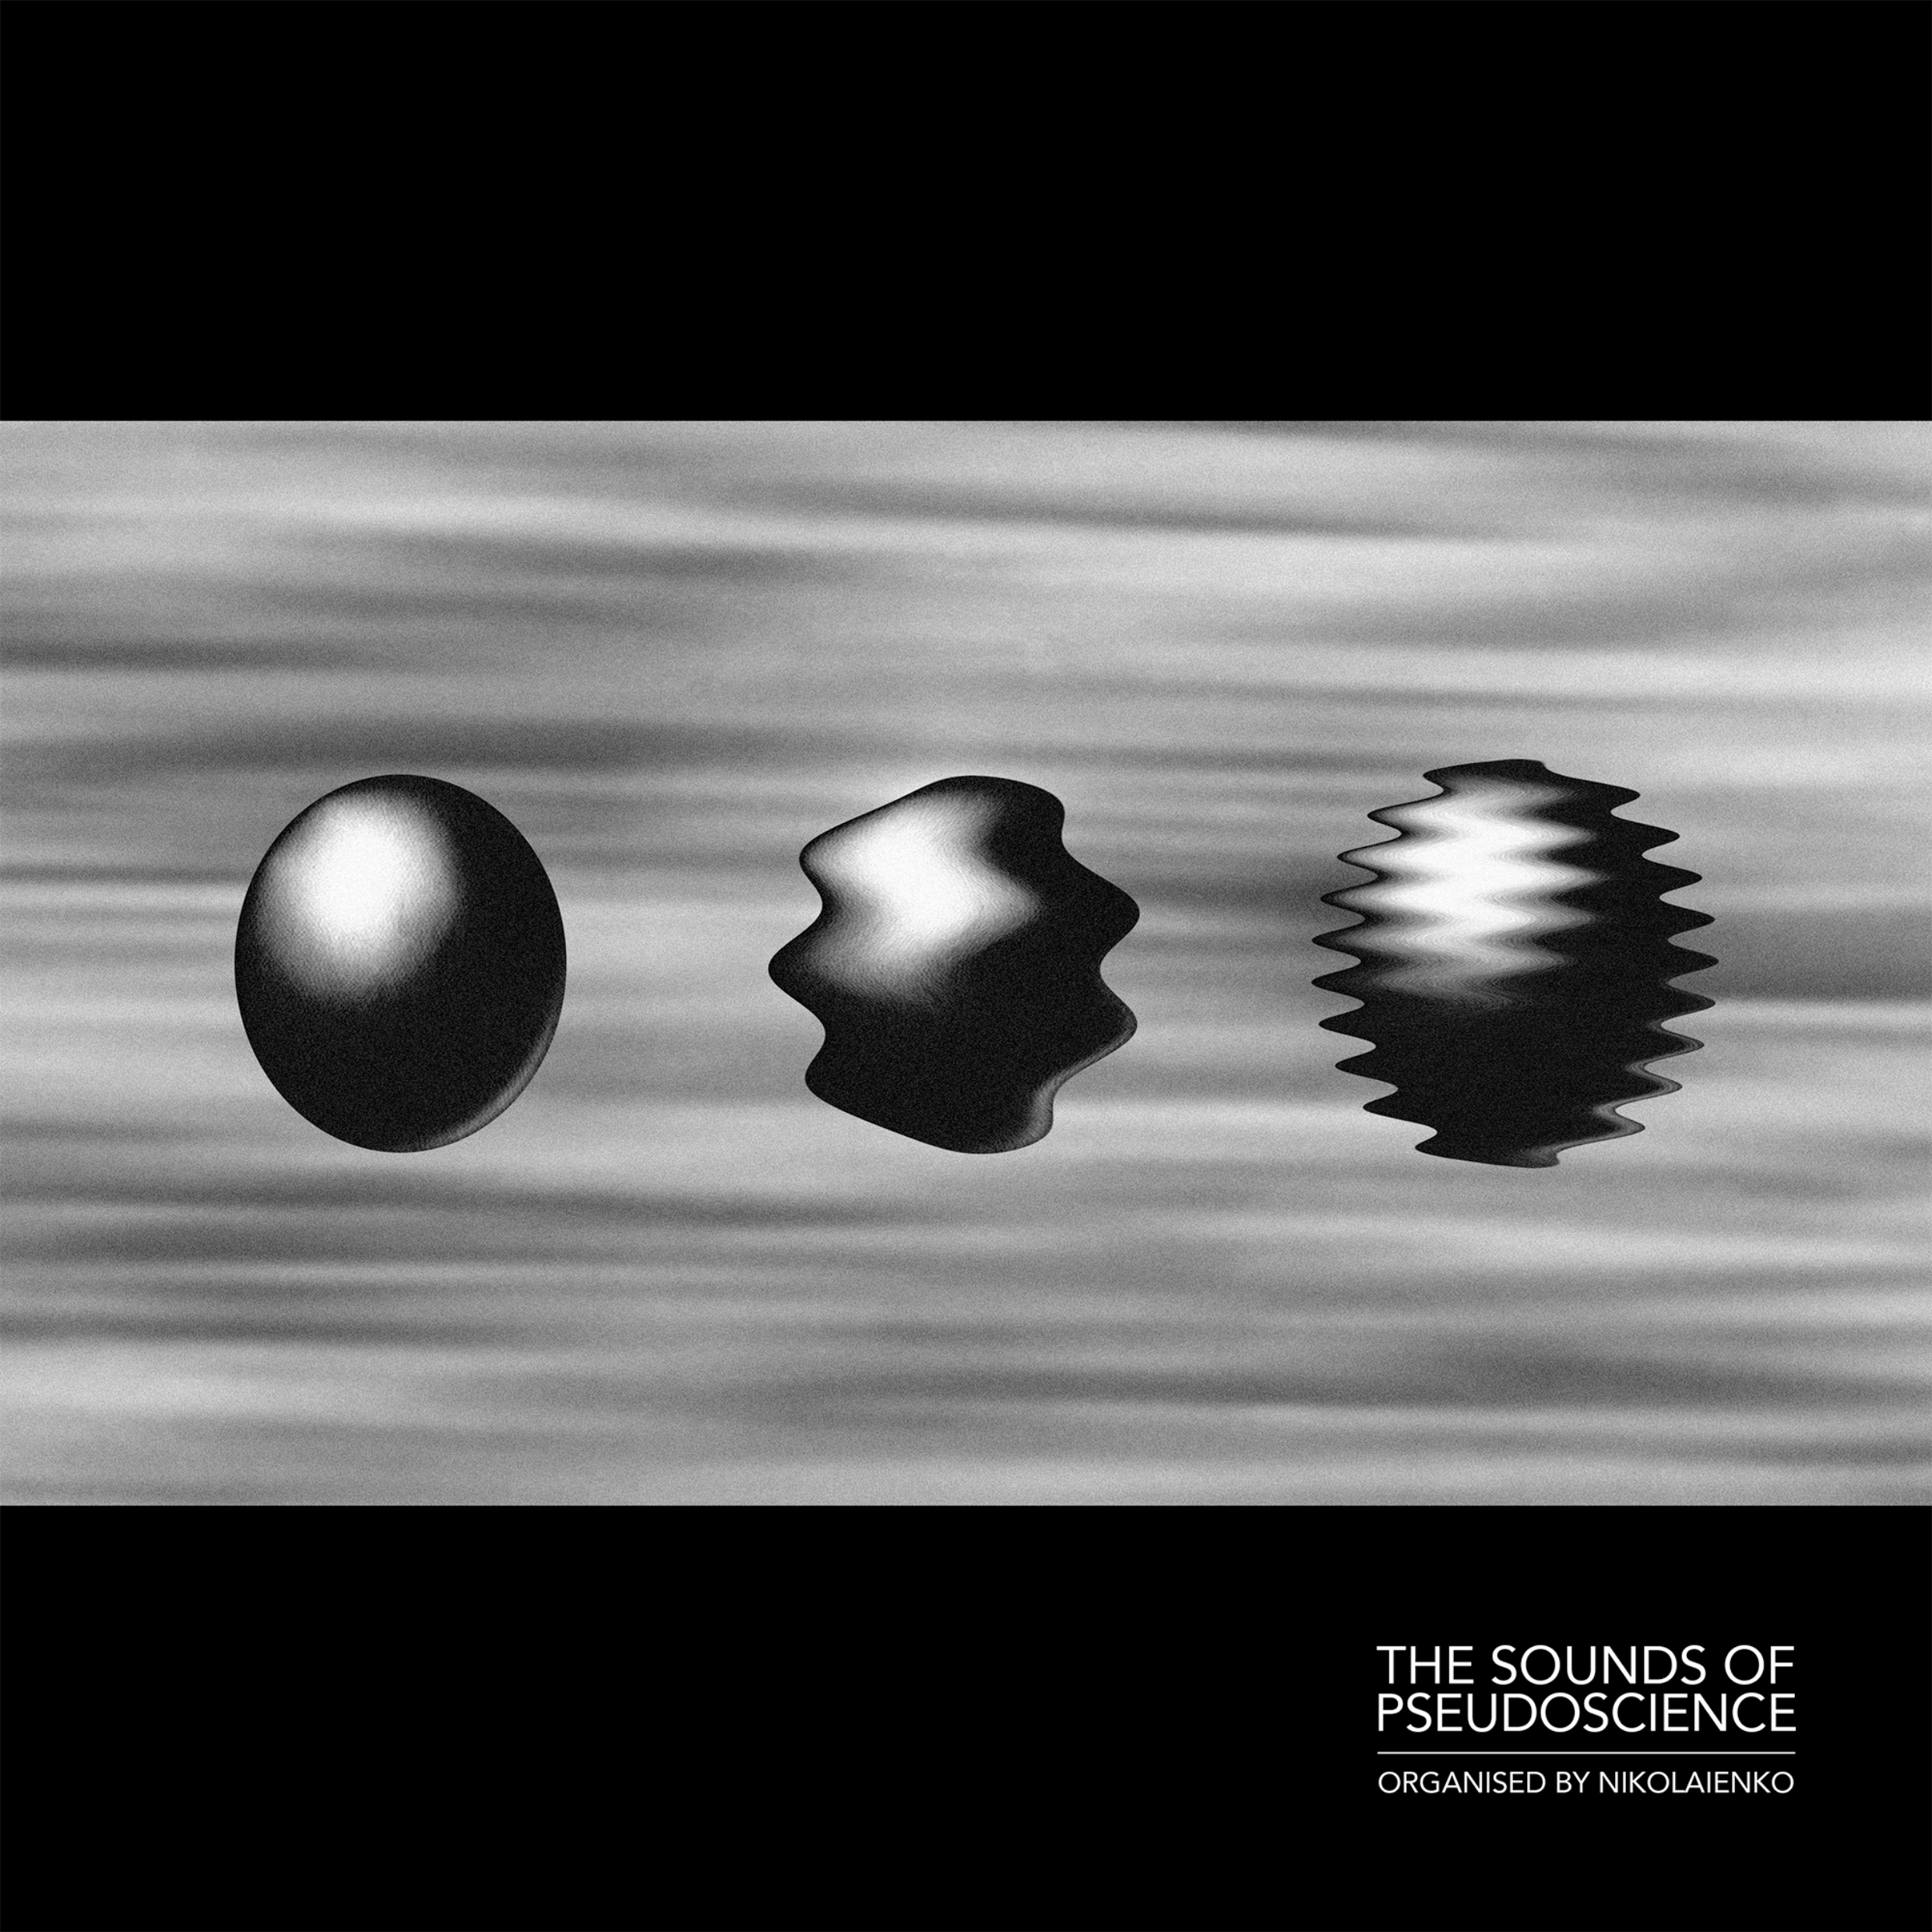 The Sounds of Pseudoscience  Organised by Nikolaienko GRAPHICAL 003 - LP/digital